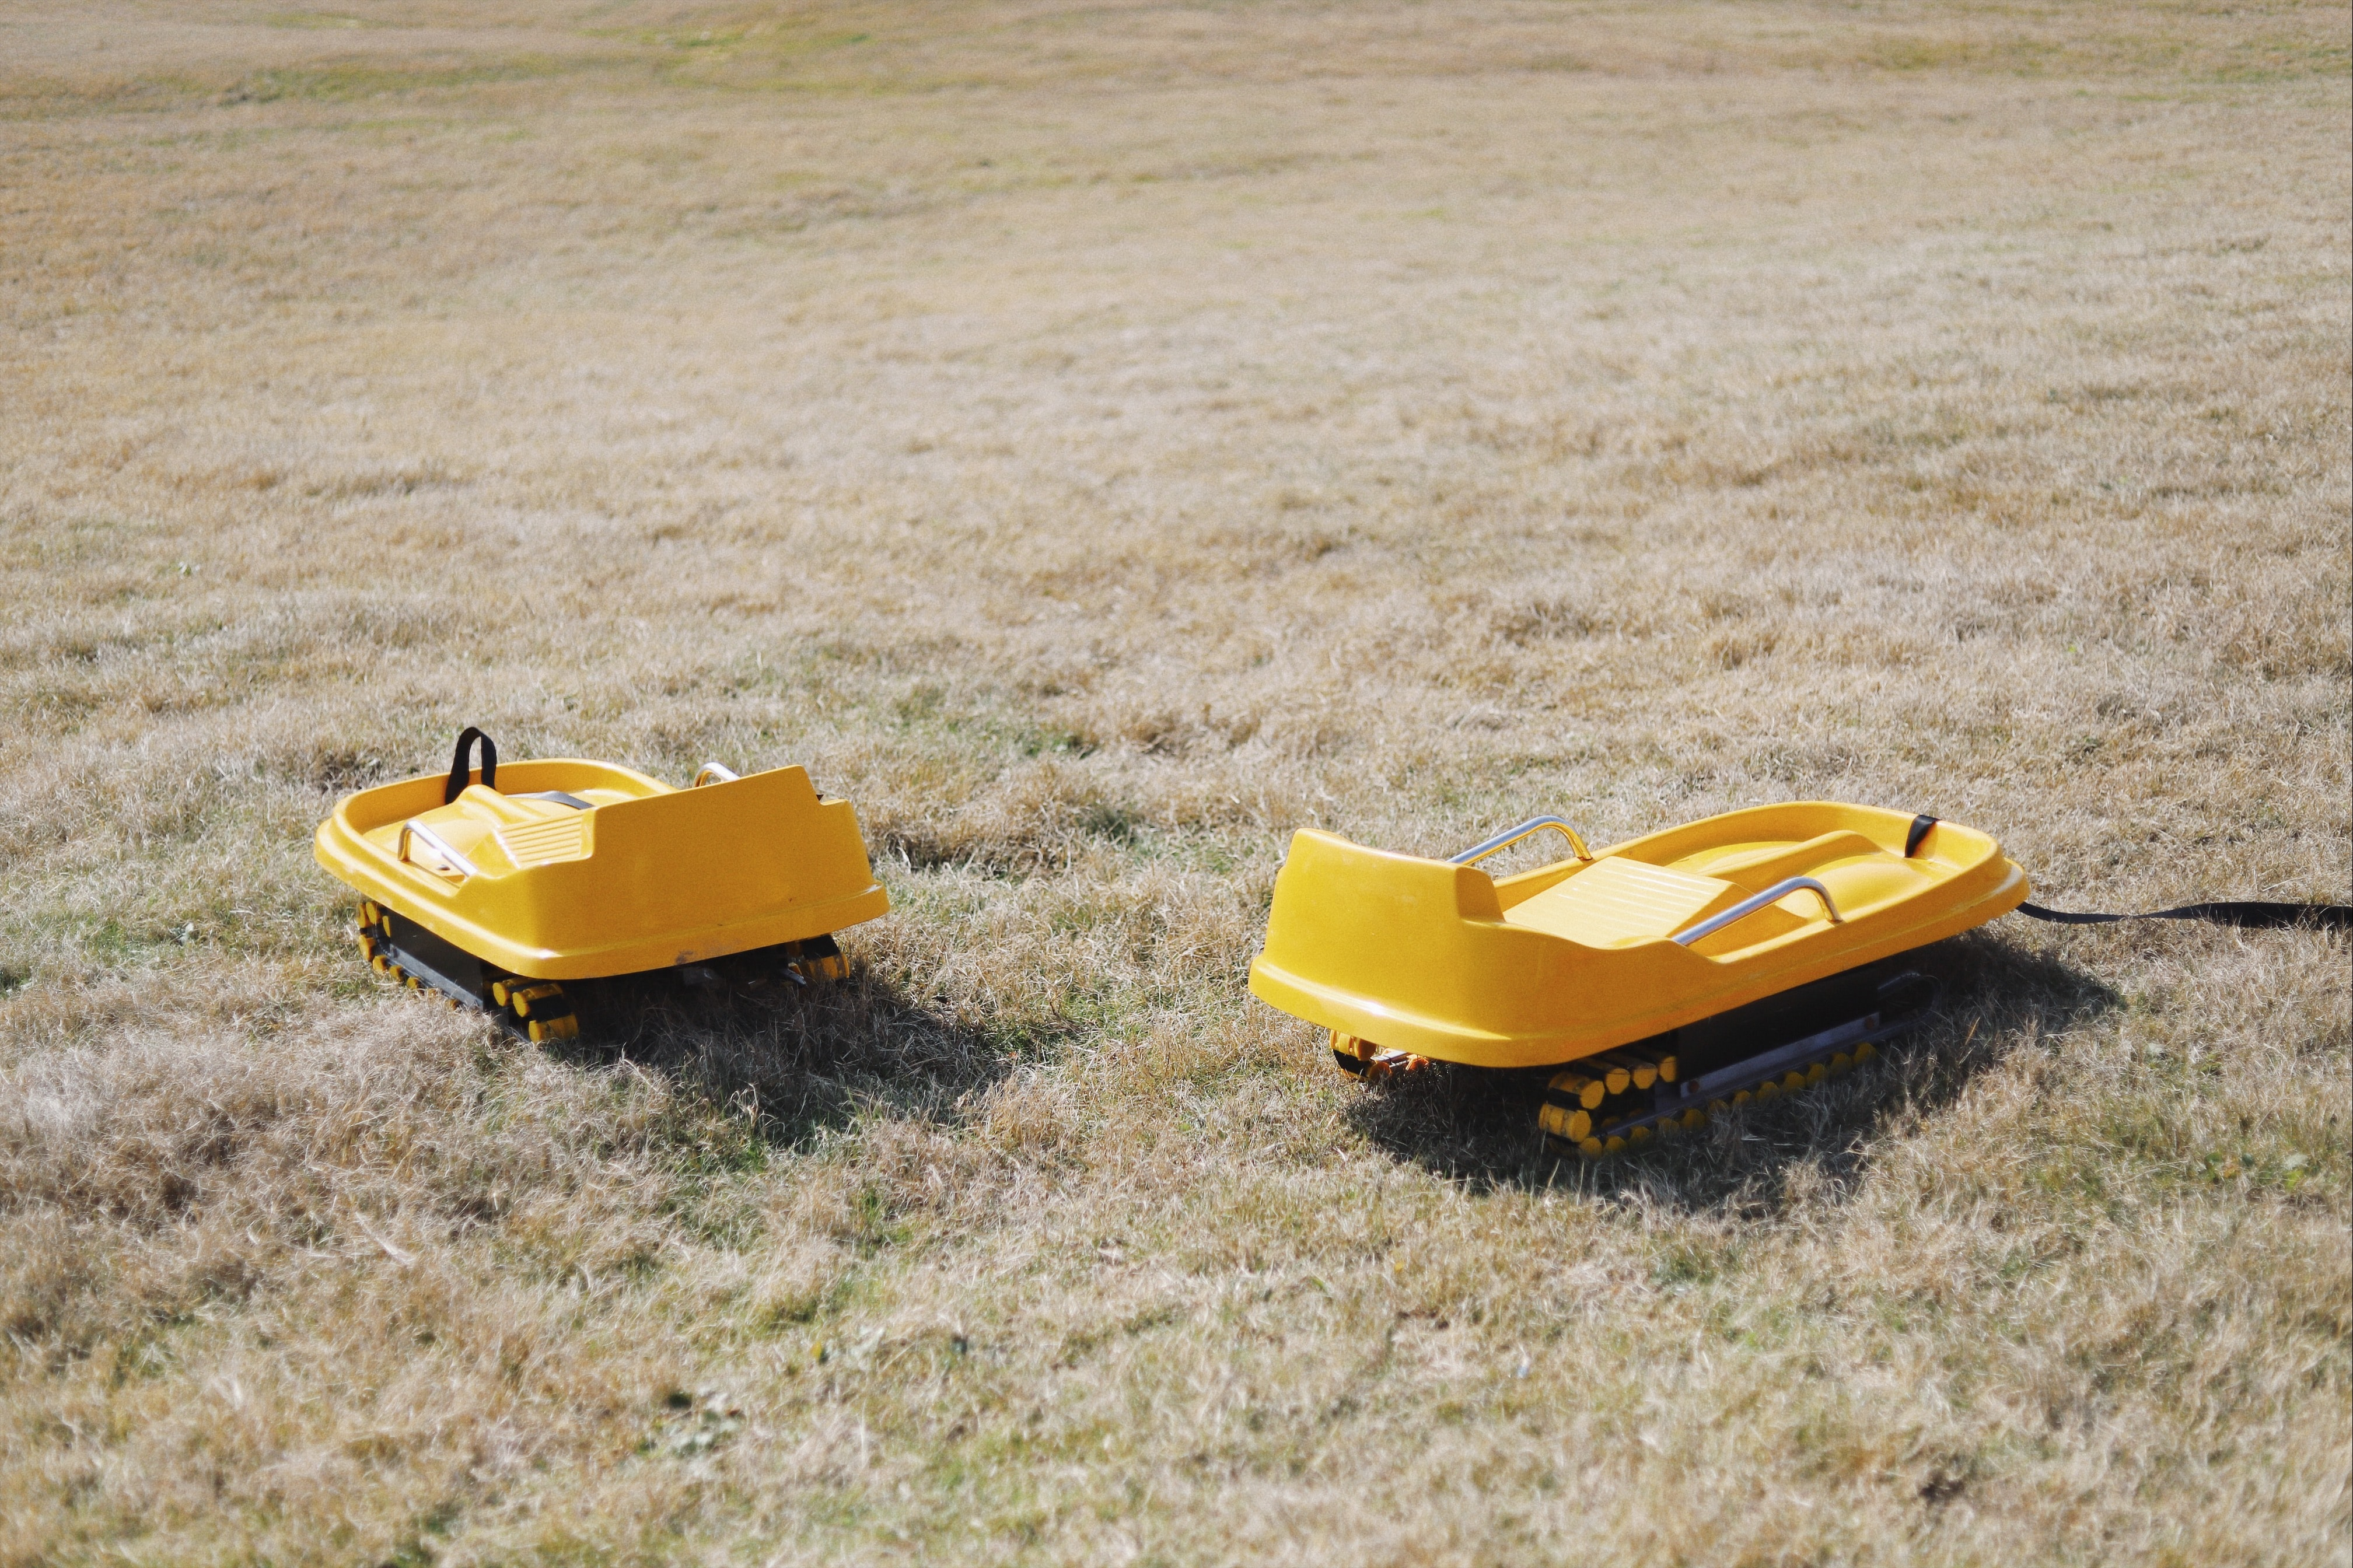 two yellow vehicle toys on green grass field